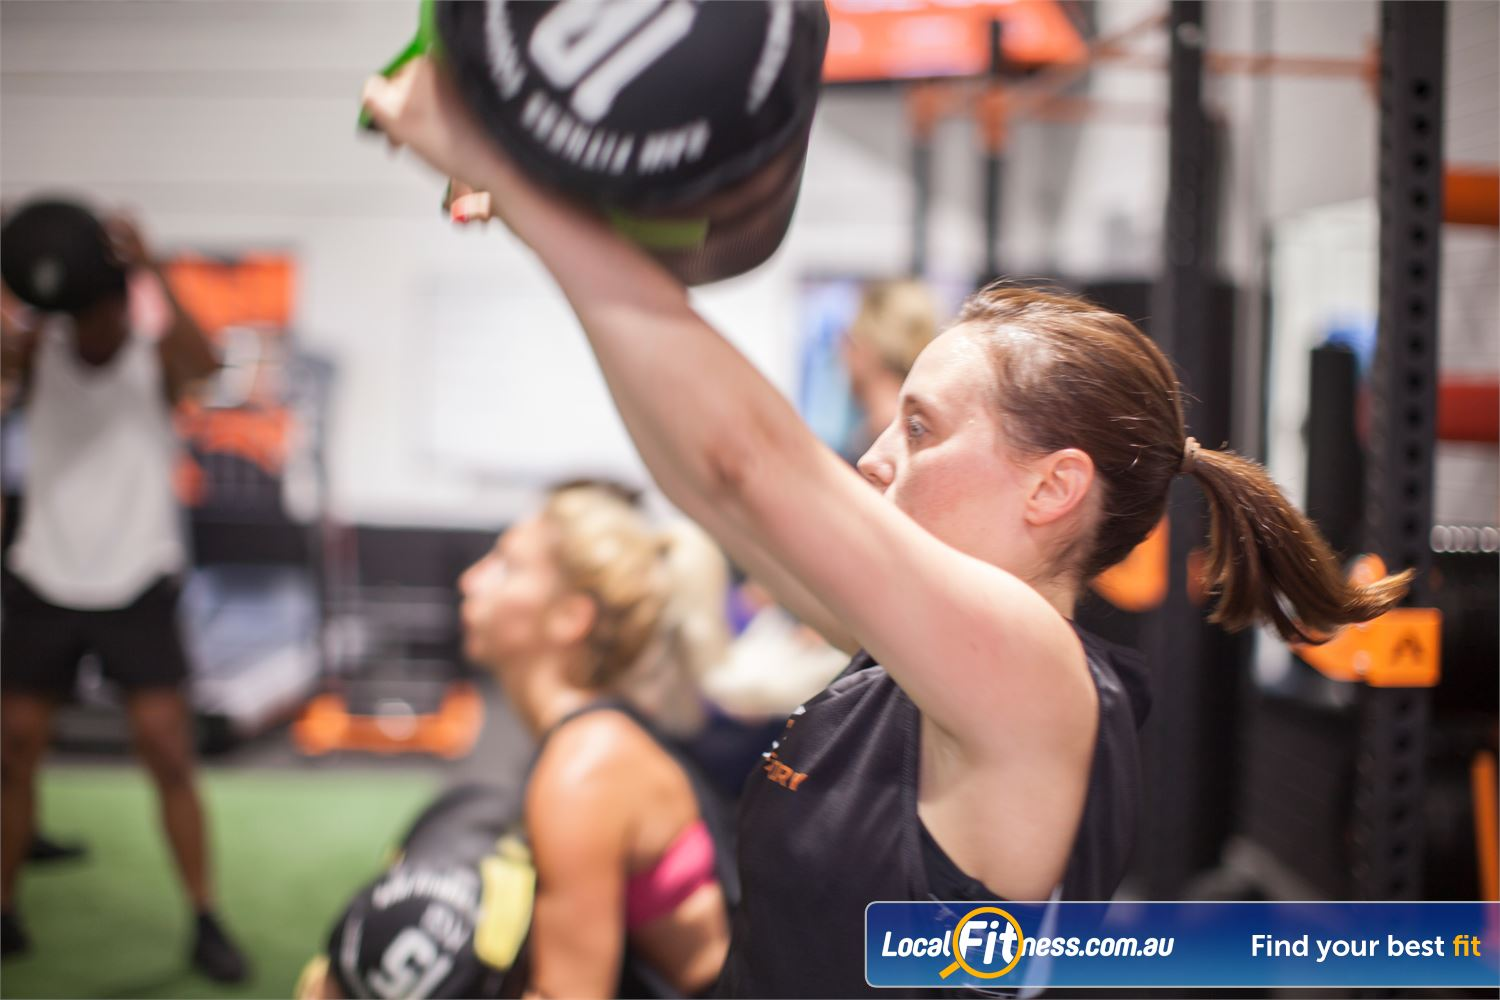 The Body Factory Near Port Hacking Group Fitness means training in a class environment with a great workout.